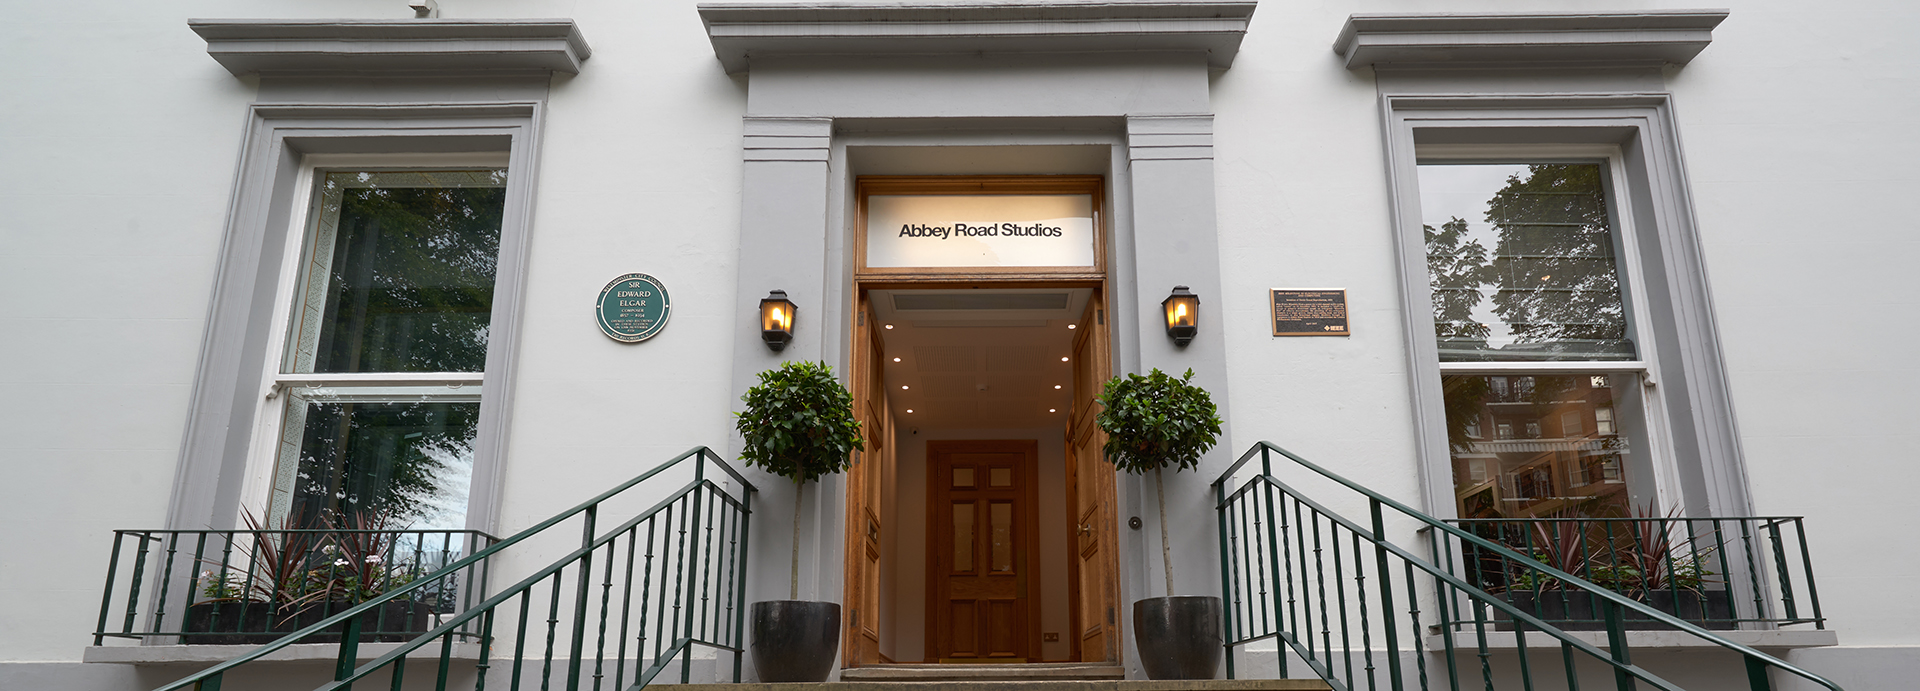 About Abbey Road